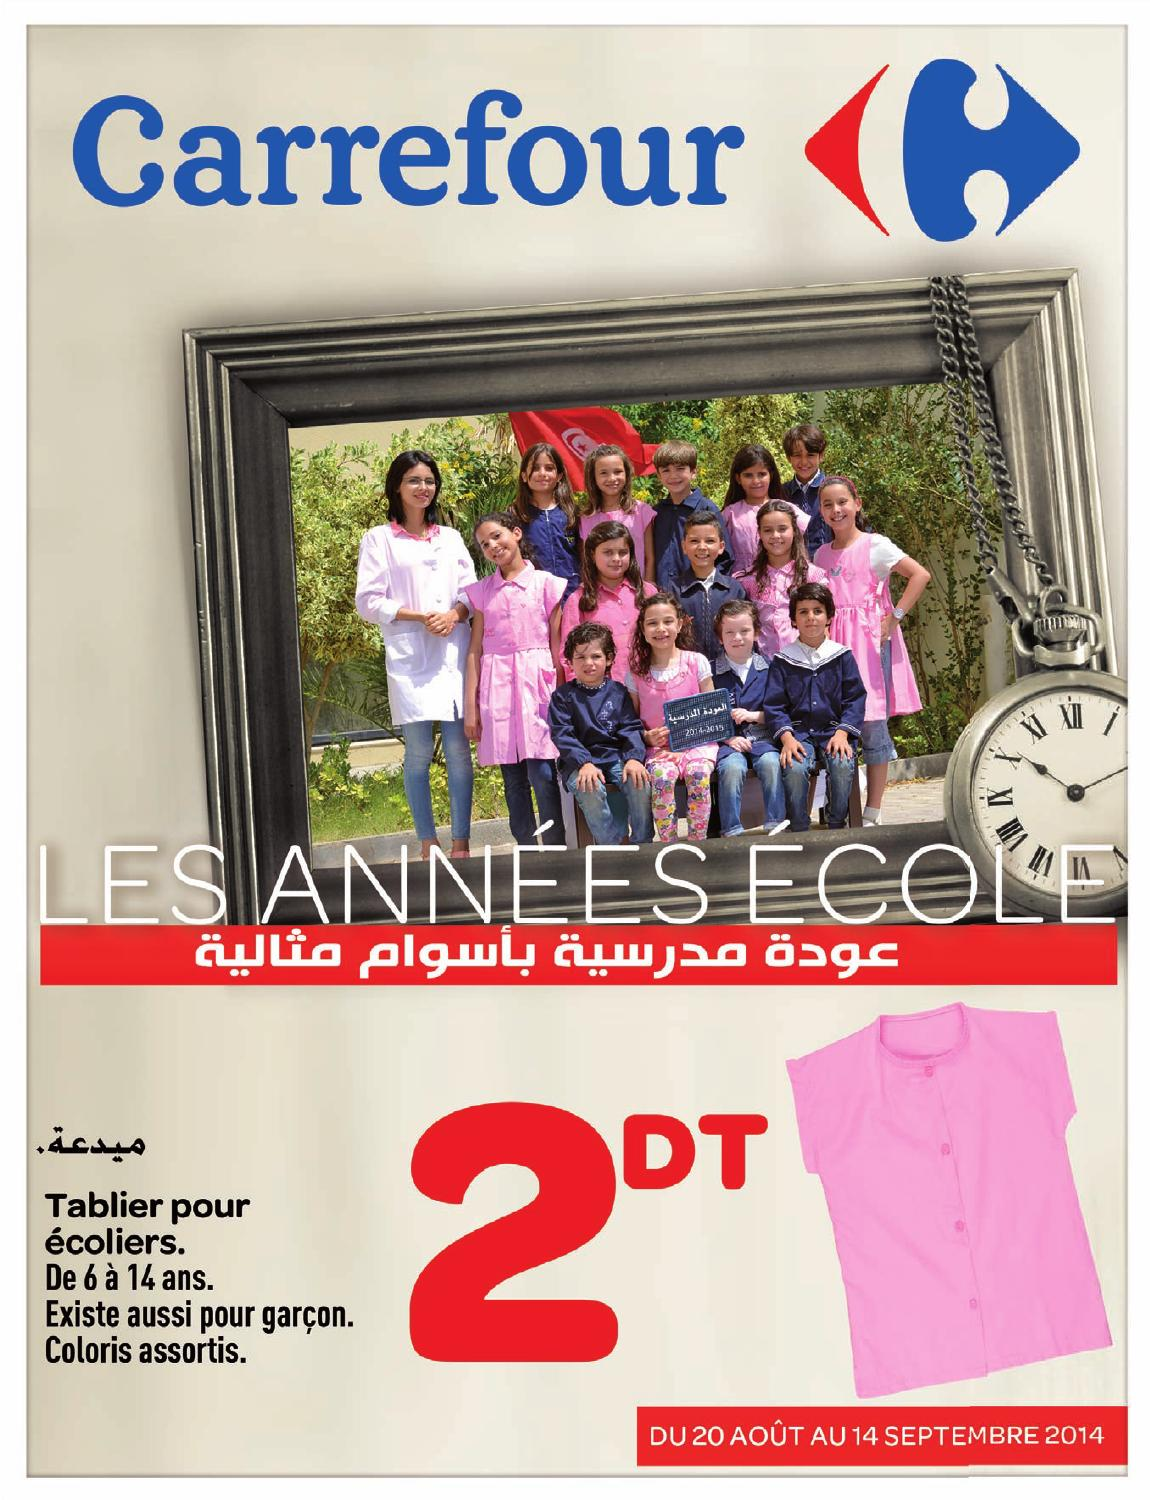 catalogue carrefour rentr e scolaire 2014 suite by carrefour tunisie issuu. Black Bedroom Furniture Sets. Home Design Ideas